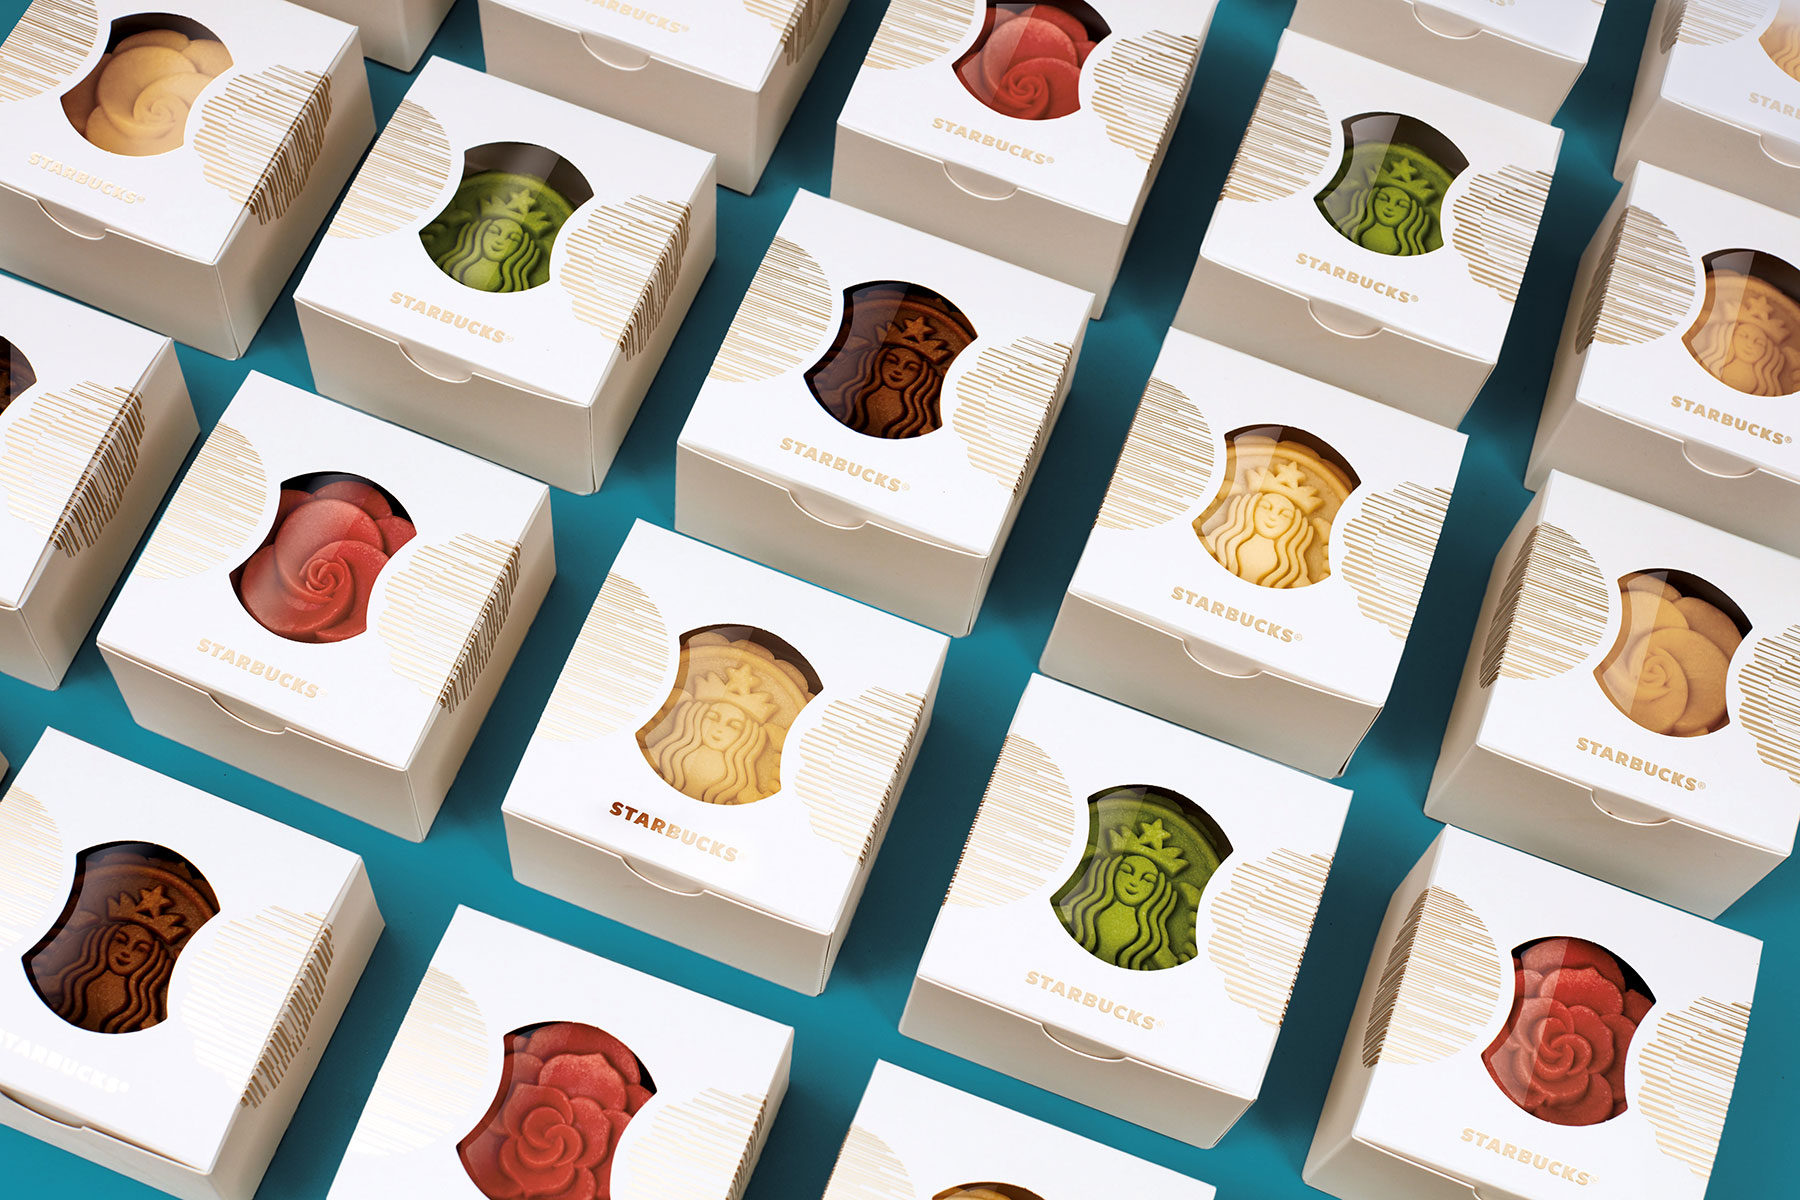 4_DesignBridge_Shanghai_Starbucks_Mooncakes_boxes_mini.jpg